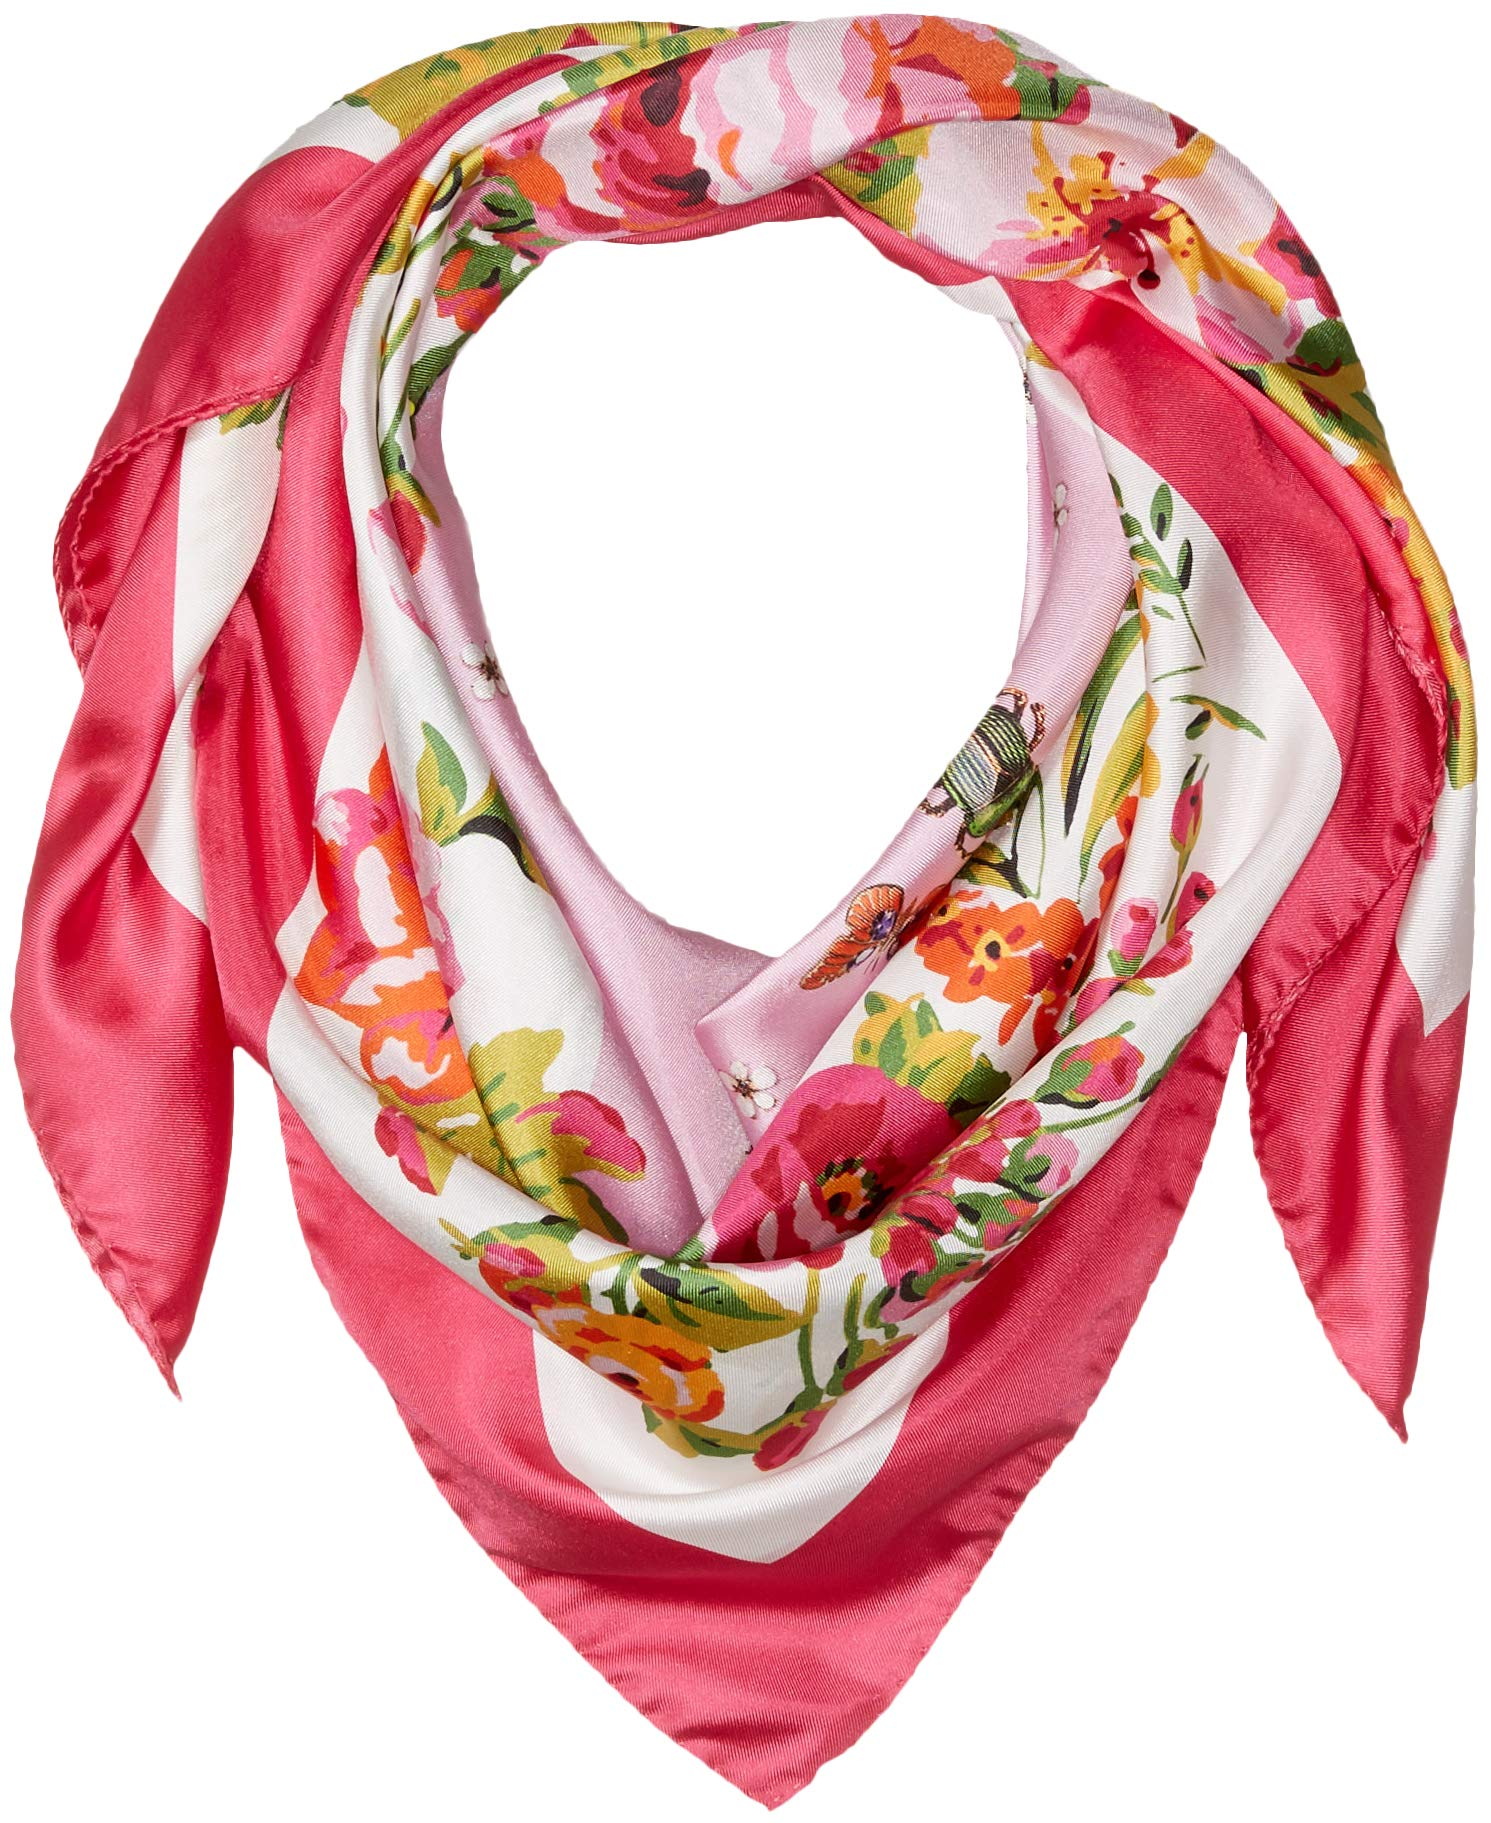 Lake Como SCARVES - Edged Jewels Scarves - Pink